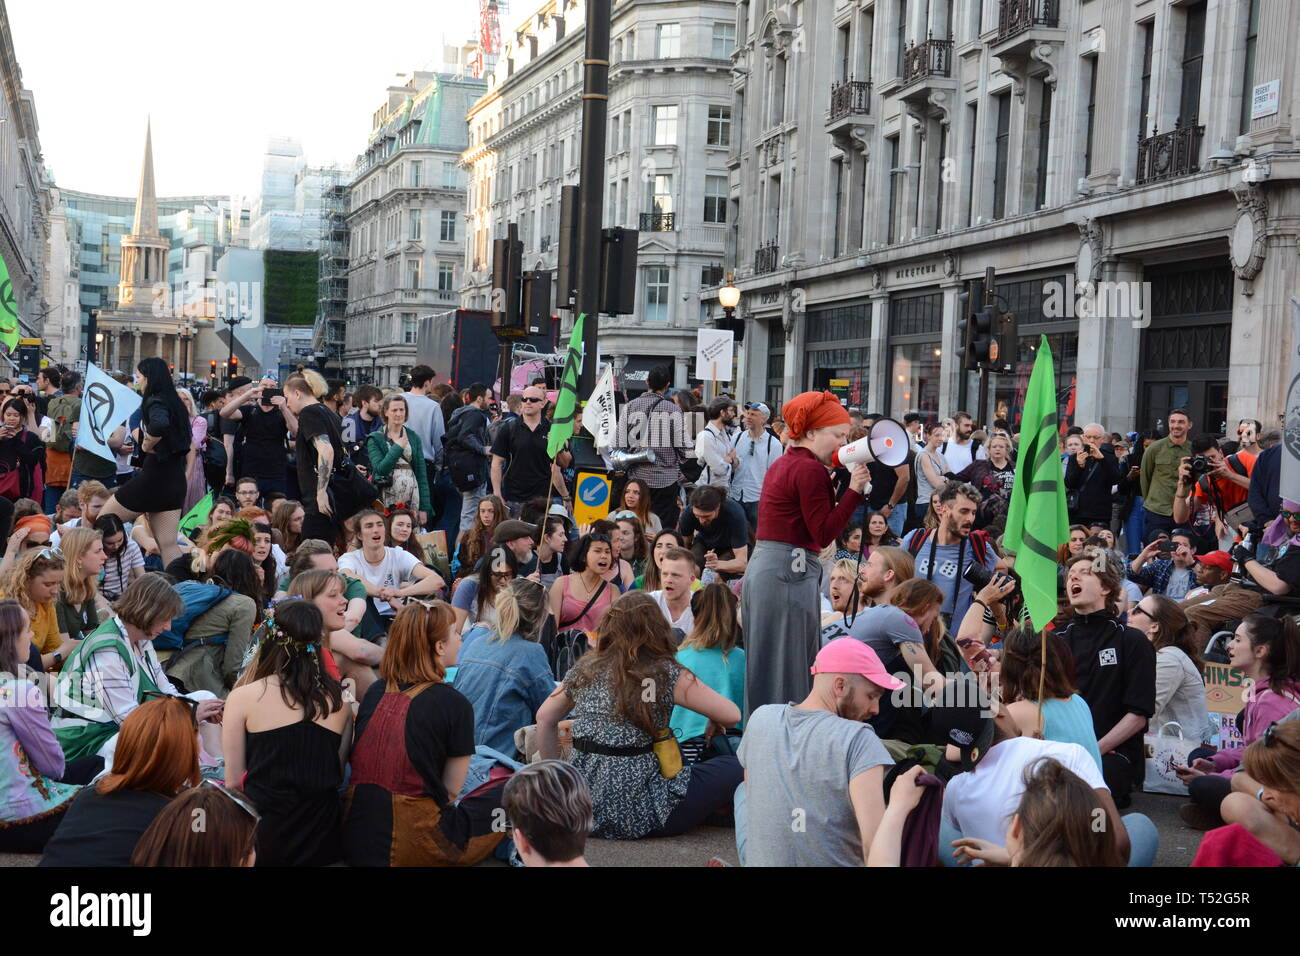 Extinction Rebellion  maintain their stranglehold on Central London with their relatively small numbers - 19th April 2019. - Stock Image